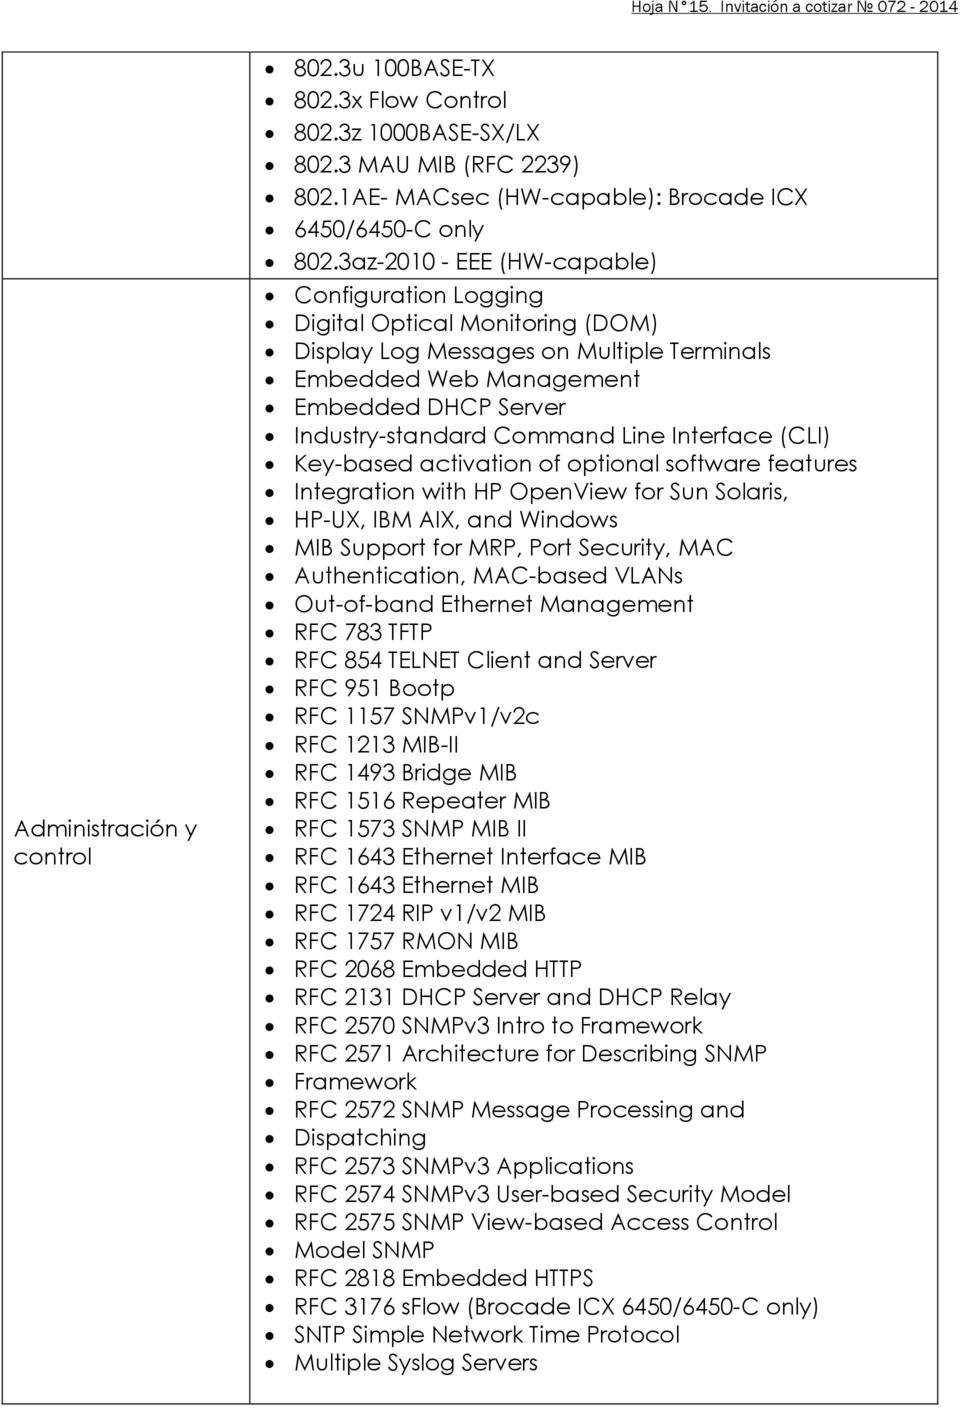 3az-2010 - EEE (HW-capable) Configuration Logging Digital Optical Monitoring (DOM) Display Log Messages on Multiple Terminals Embedded Web Management Embedded DHCP Server Industry-standard Command